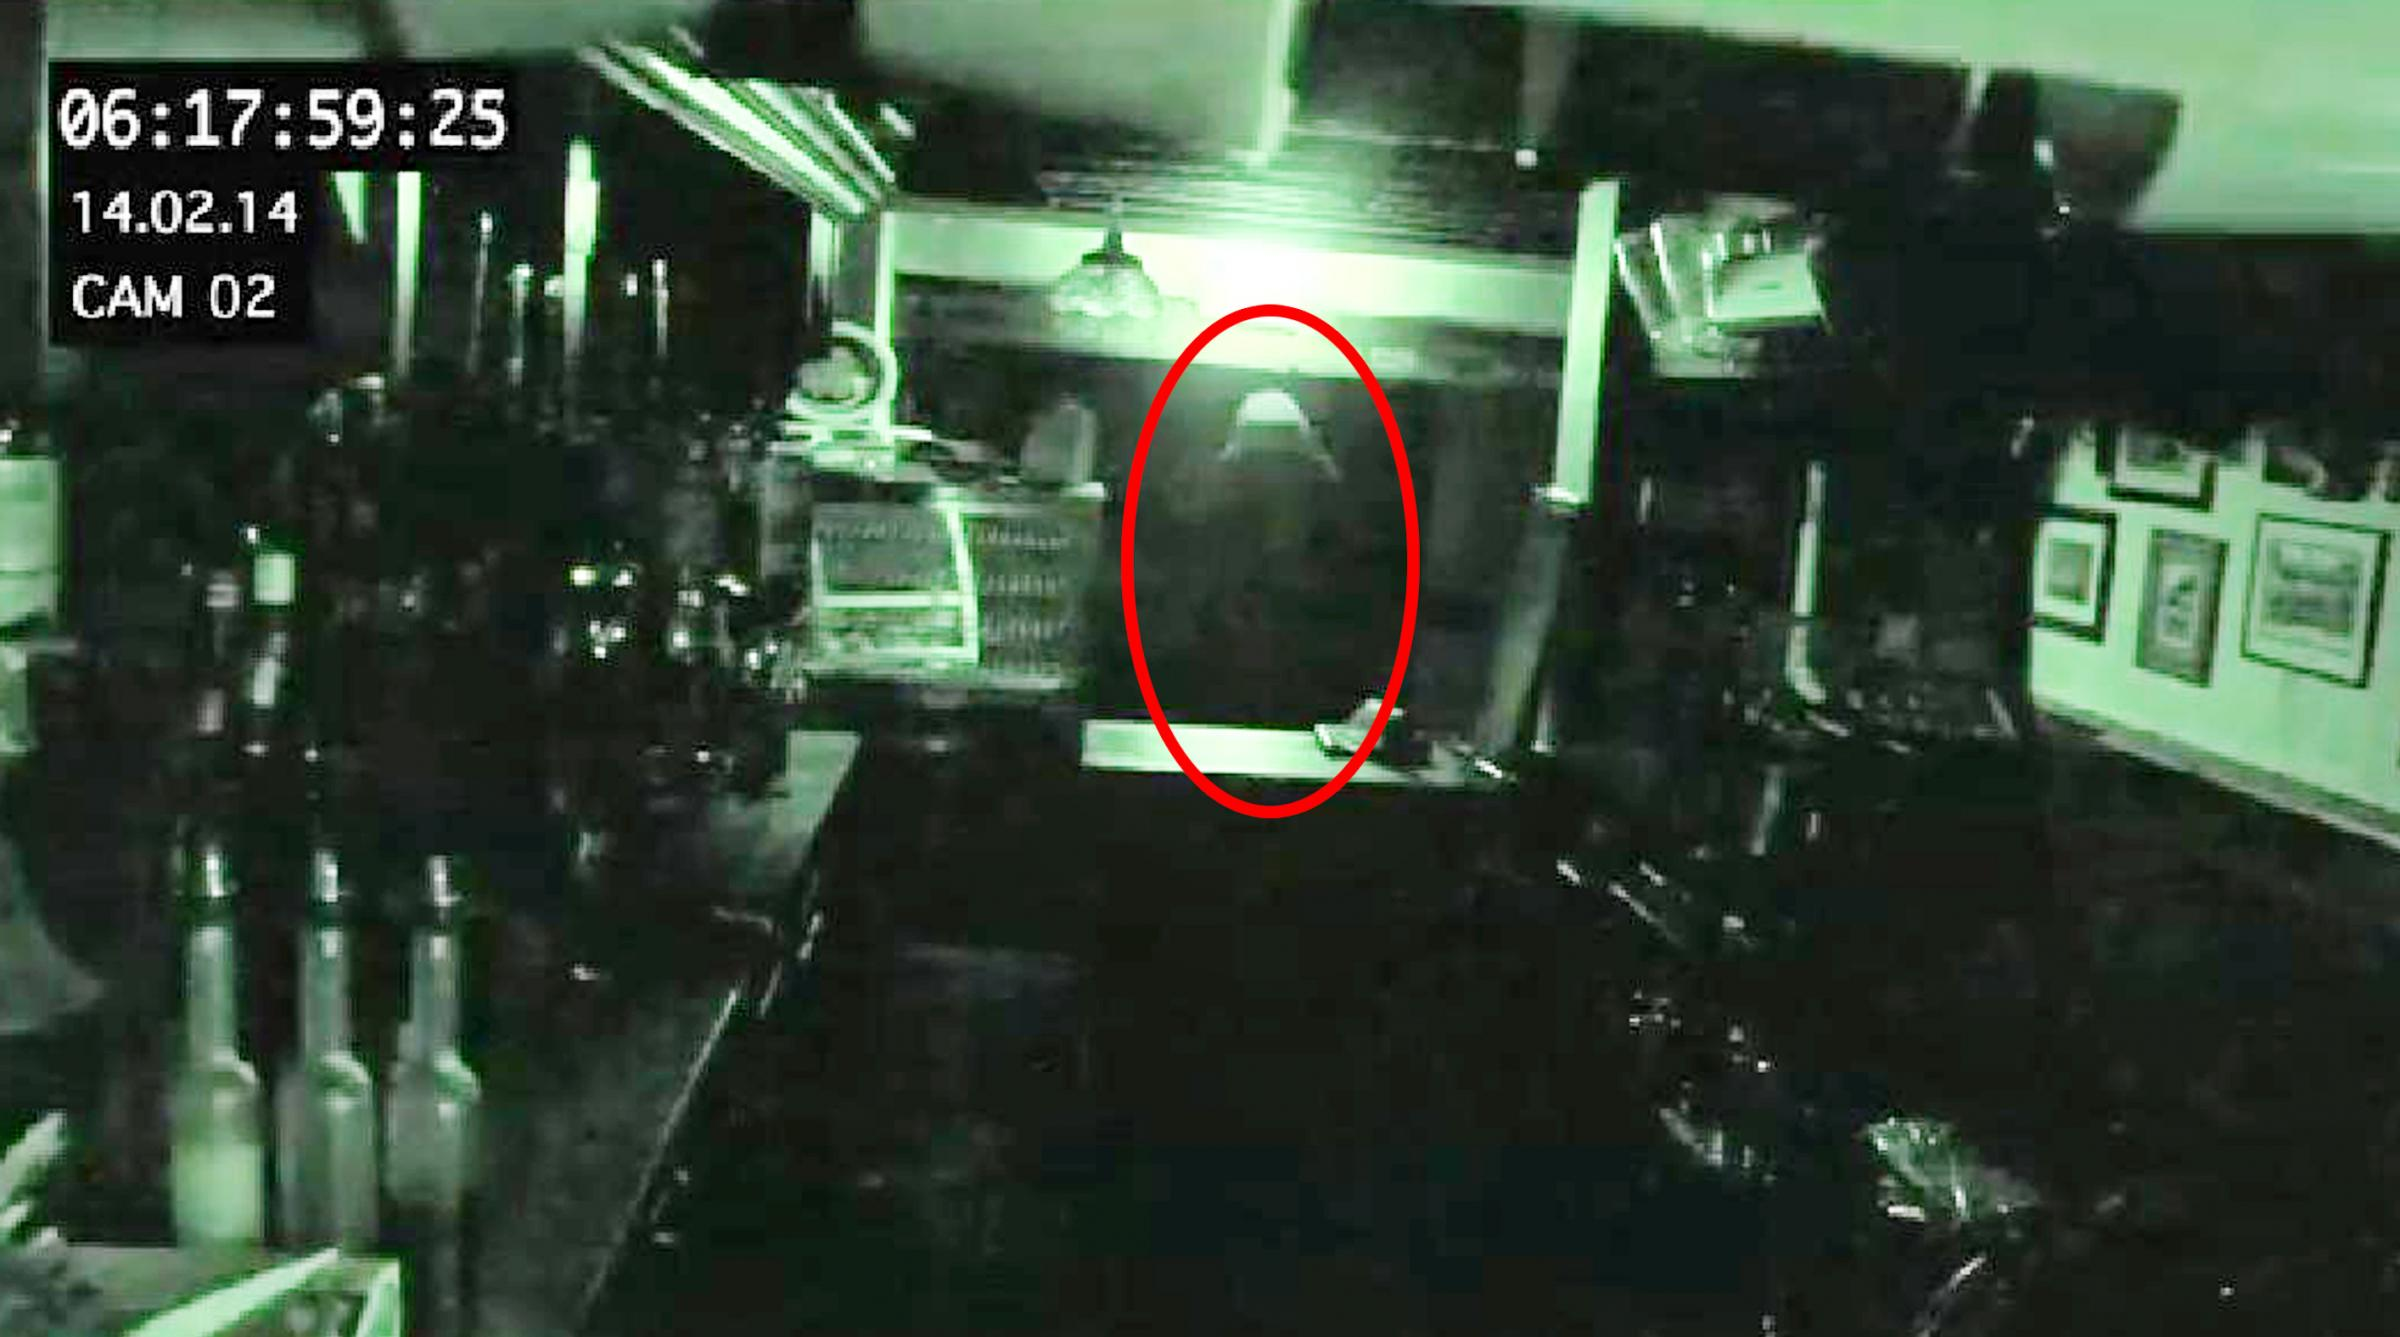 CCTV showing the 'ghost' at Ye Olde Man & Scythe